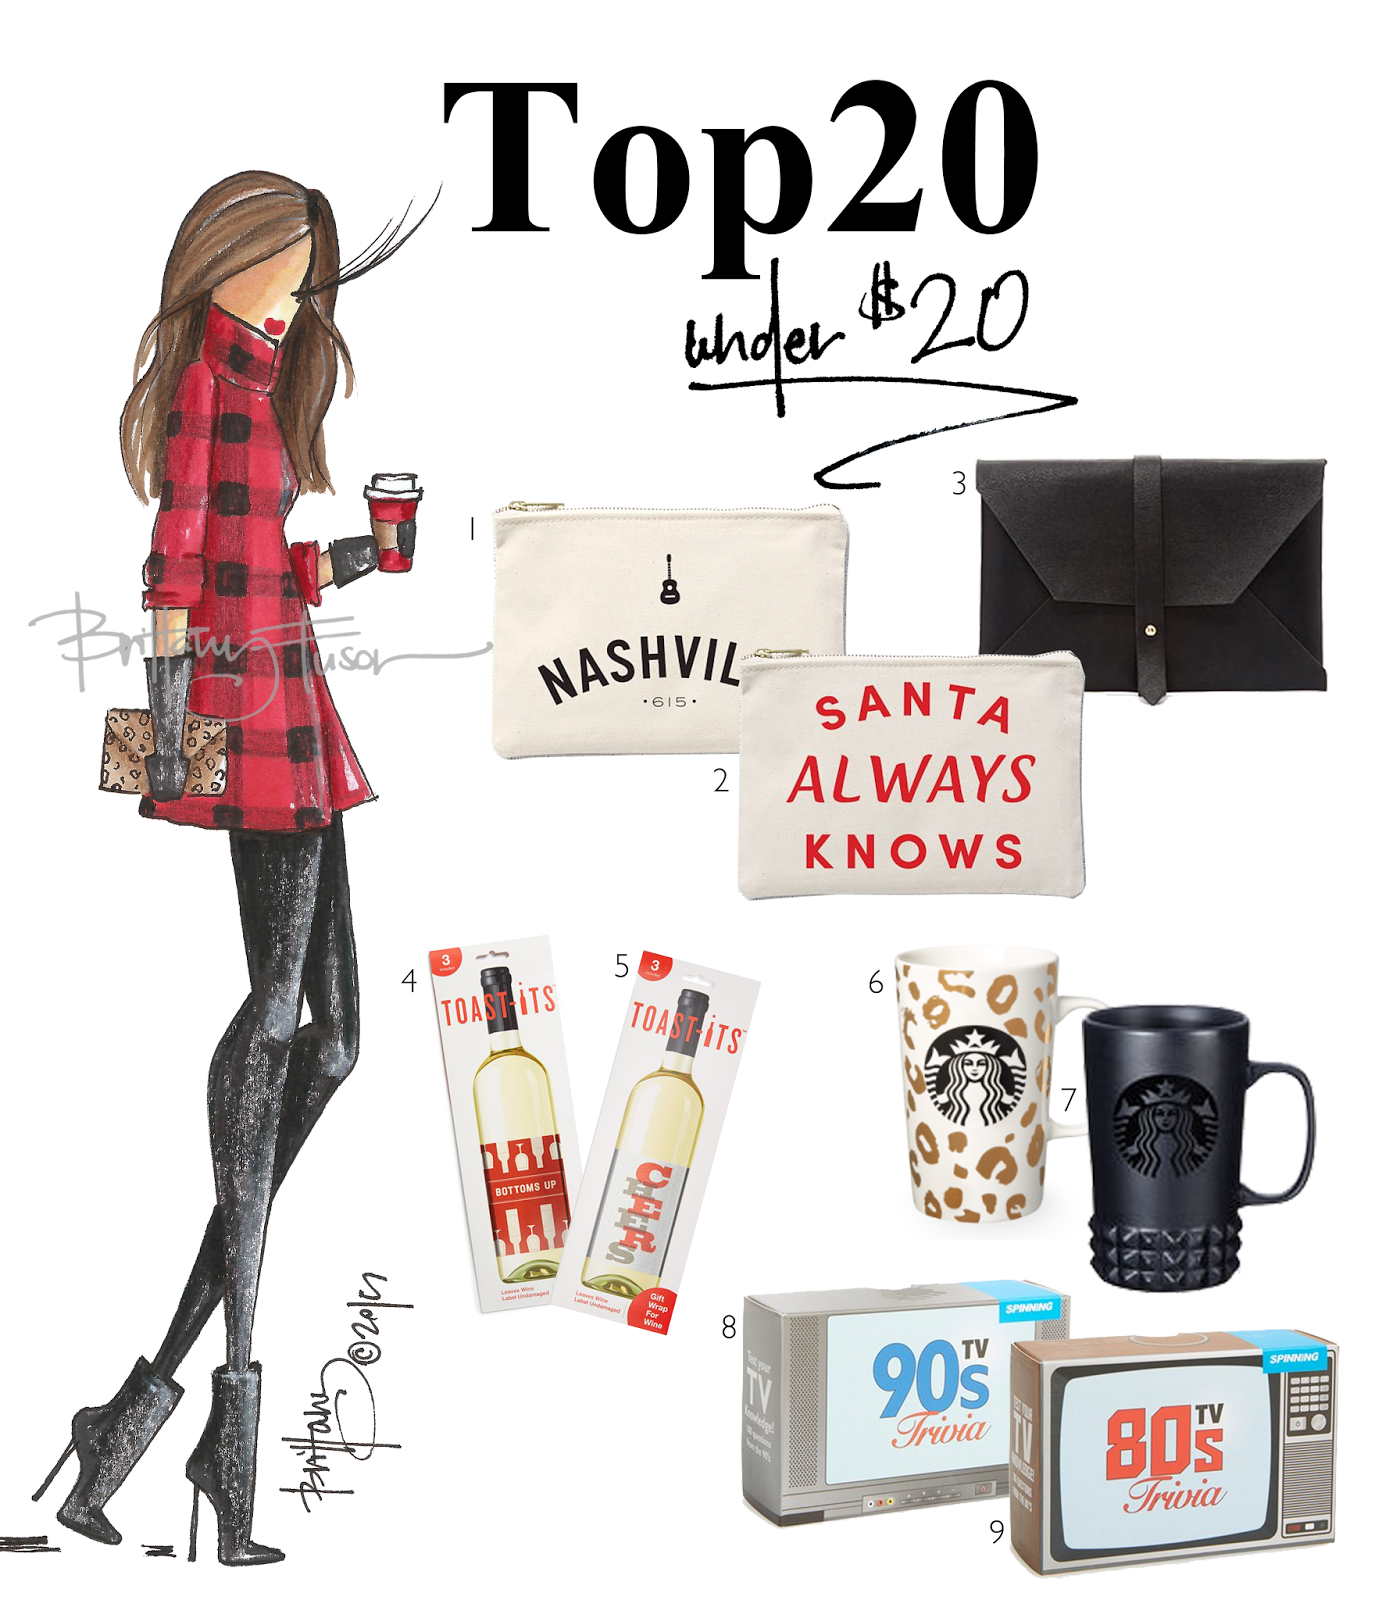 Brittany Fuson: 2015 Gift Guide: Top 20 Gifts Under $20